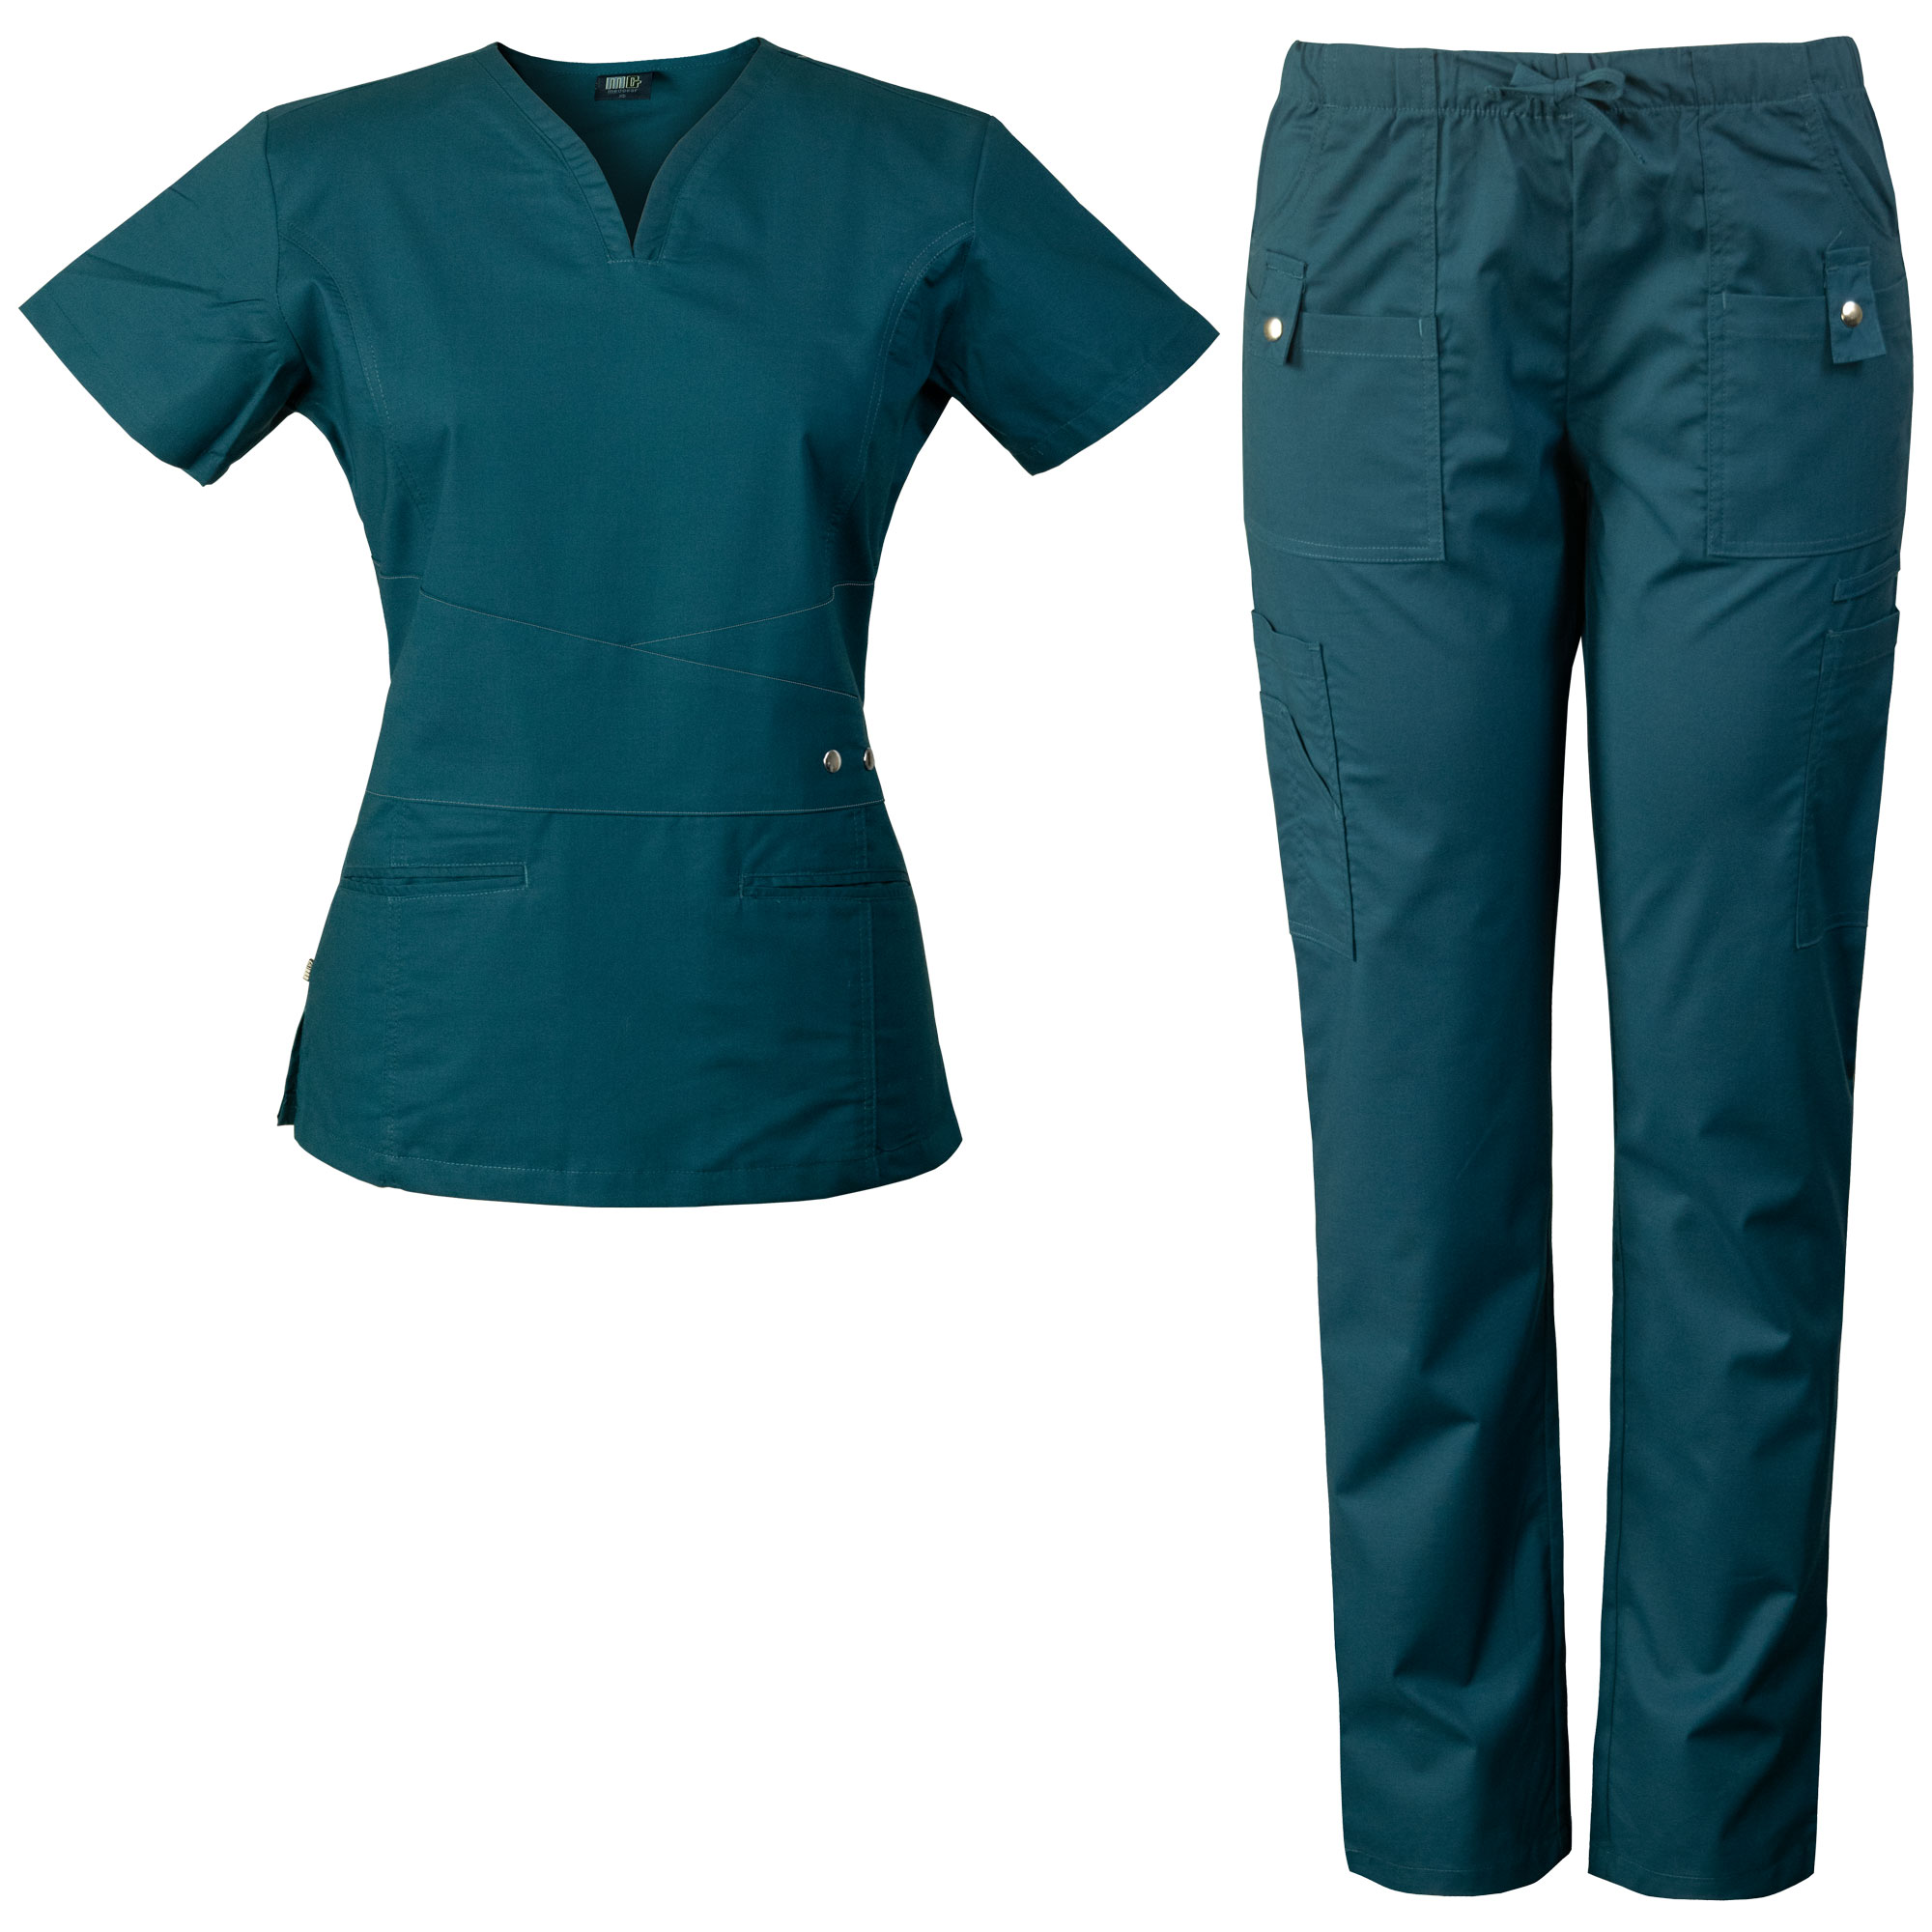 Women's Scrubs Set with Curved V-neck and Flattering Delicate Waistband Detail 7904